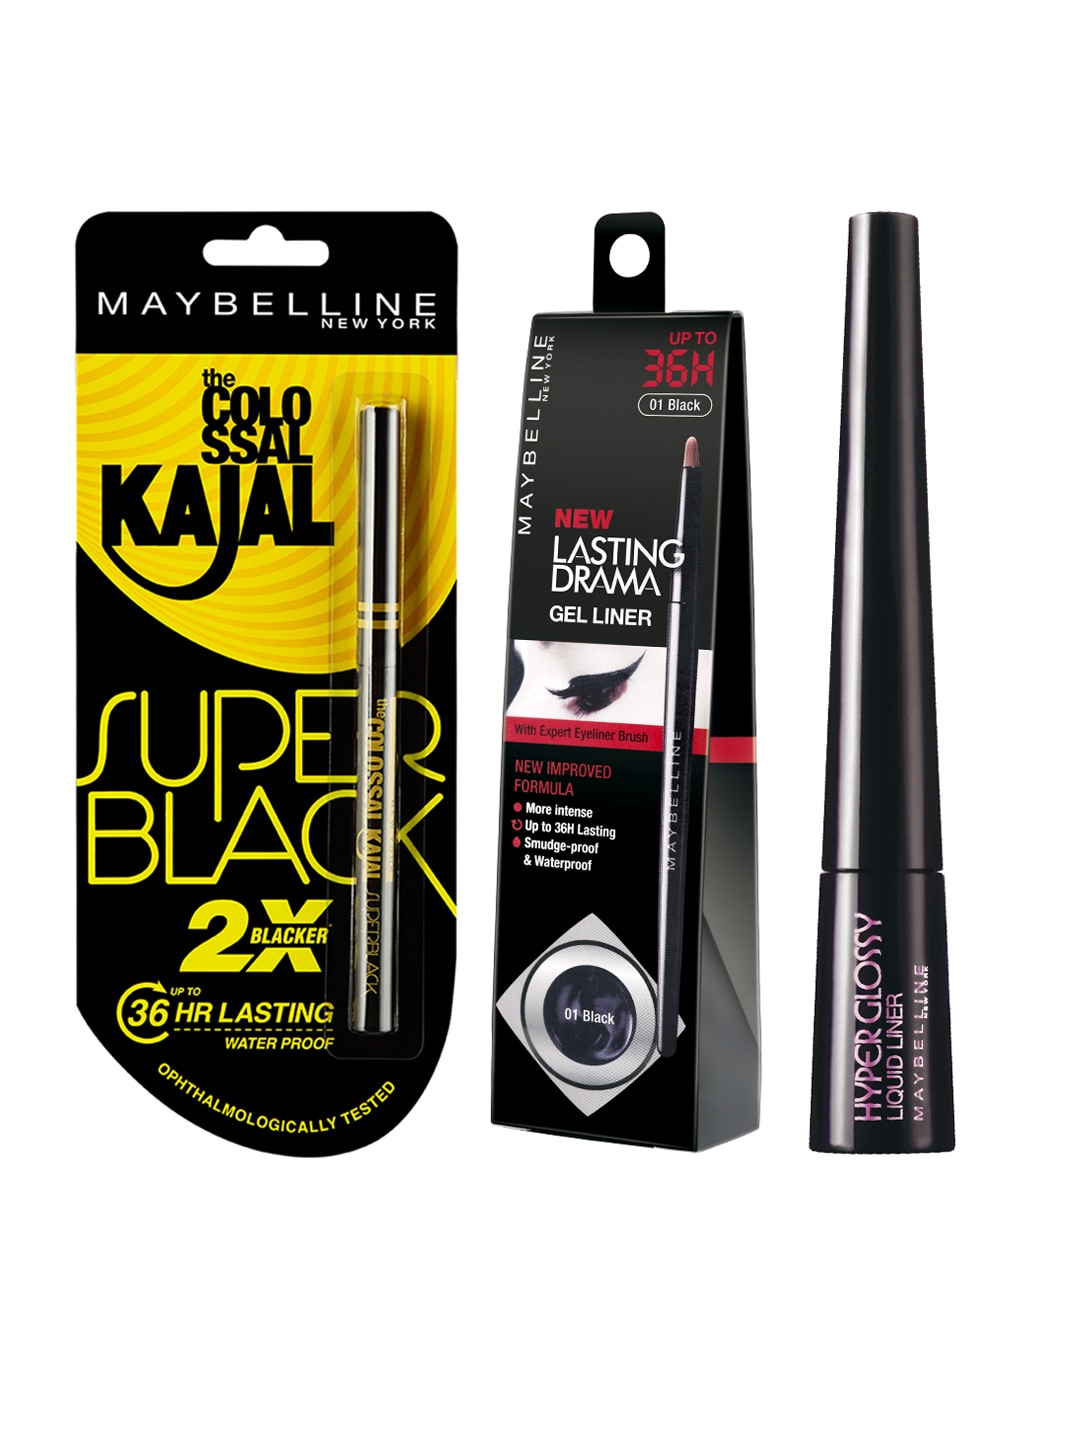 0a7df56f273 Maybelline Colossal Kajal Mascara Concealer - Buy Maybelline Colossal Kajal  Mascara Concealer online in India